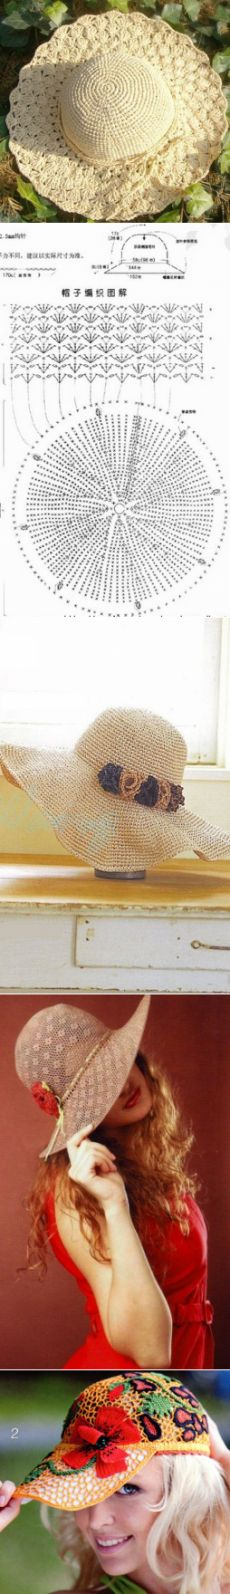 56 best chapéu images on Pinterest | Hand crafts, Hat crochet and ...